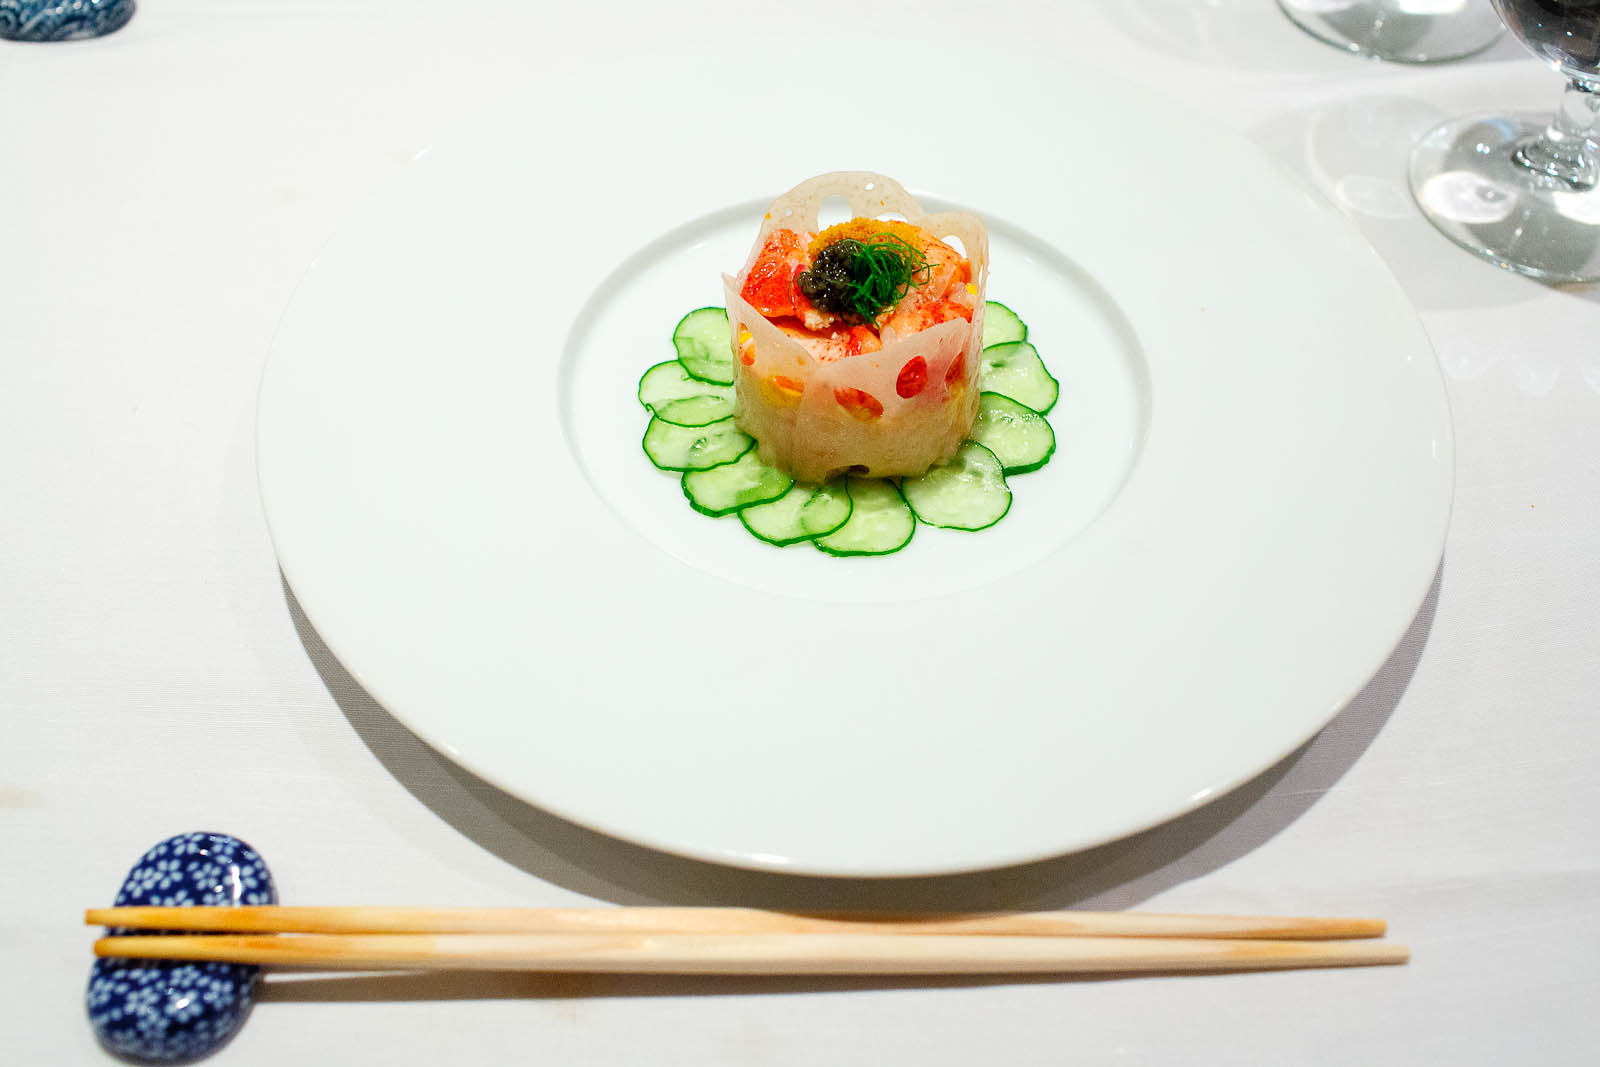 Steamed lobster with uni mousse - layers of steamed Maine lobste